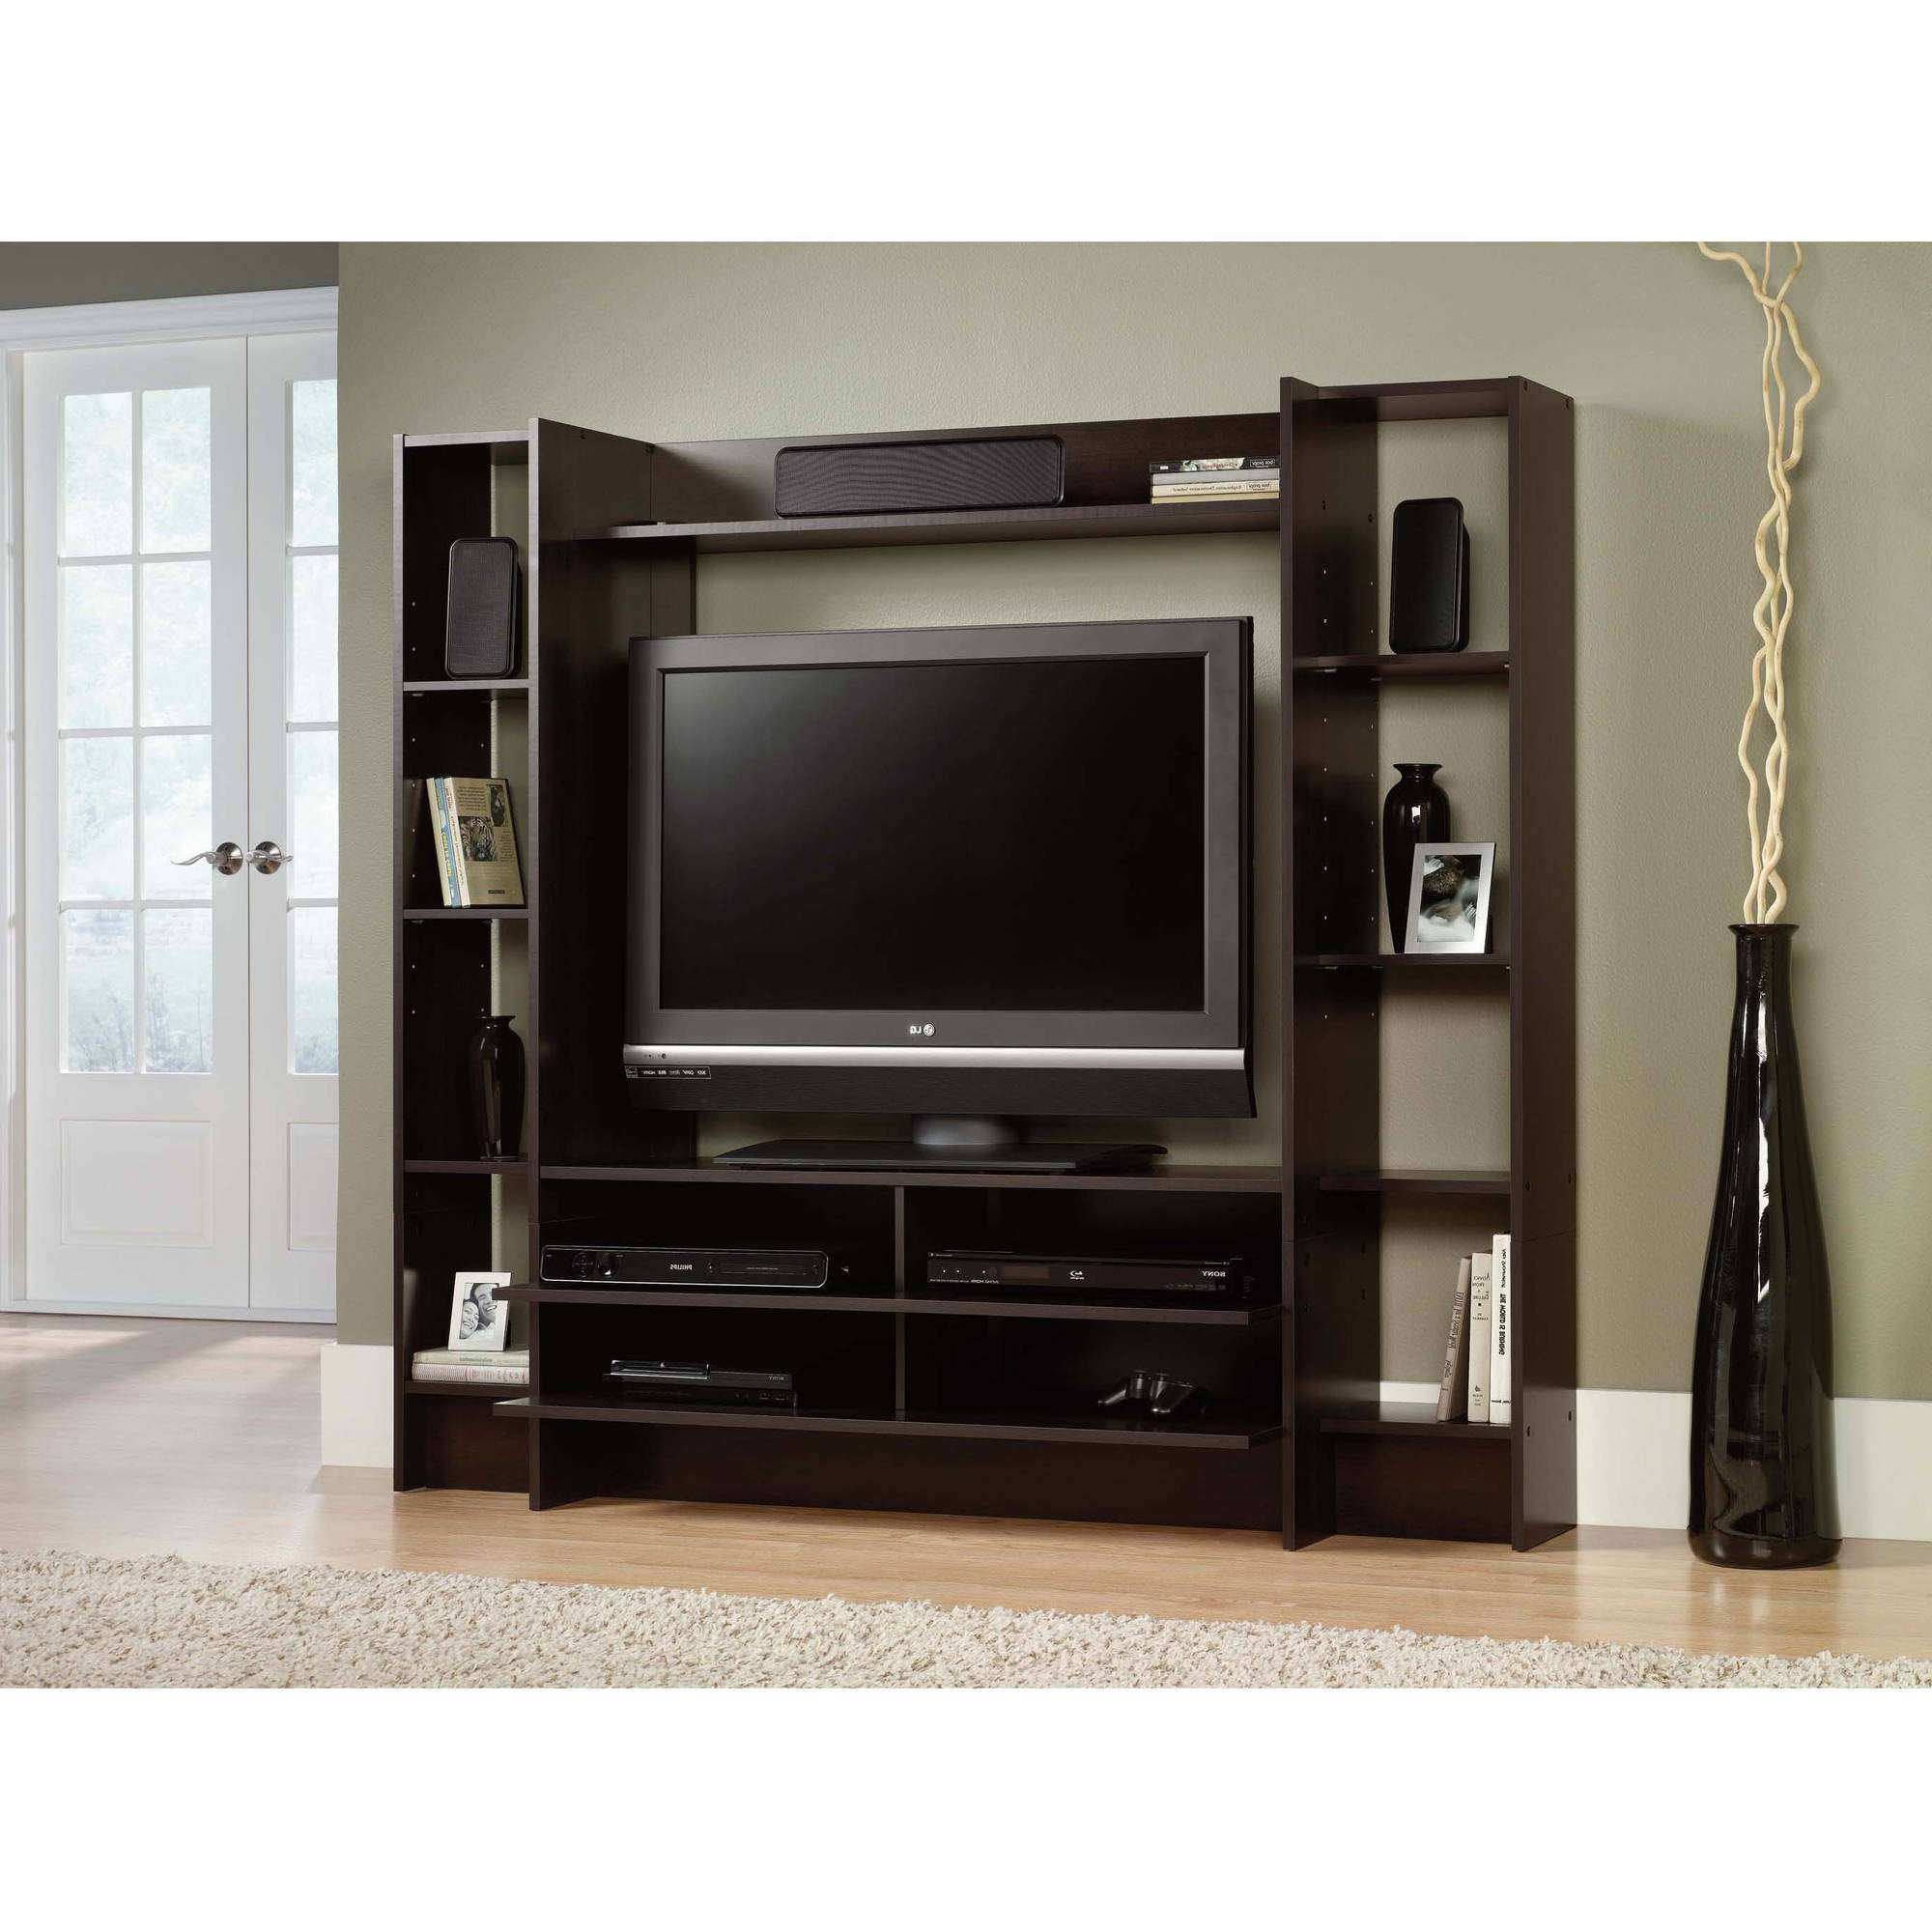 Sauder Beginnings Entertainment Wall System For Tvs Up To 42 Inside Cherry Wood Tv Stands (View 14 of 15)